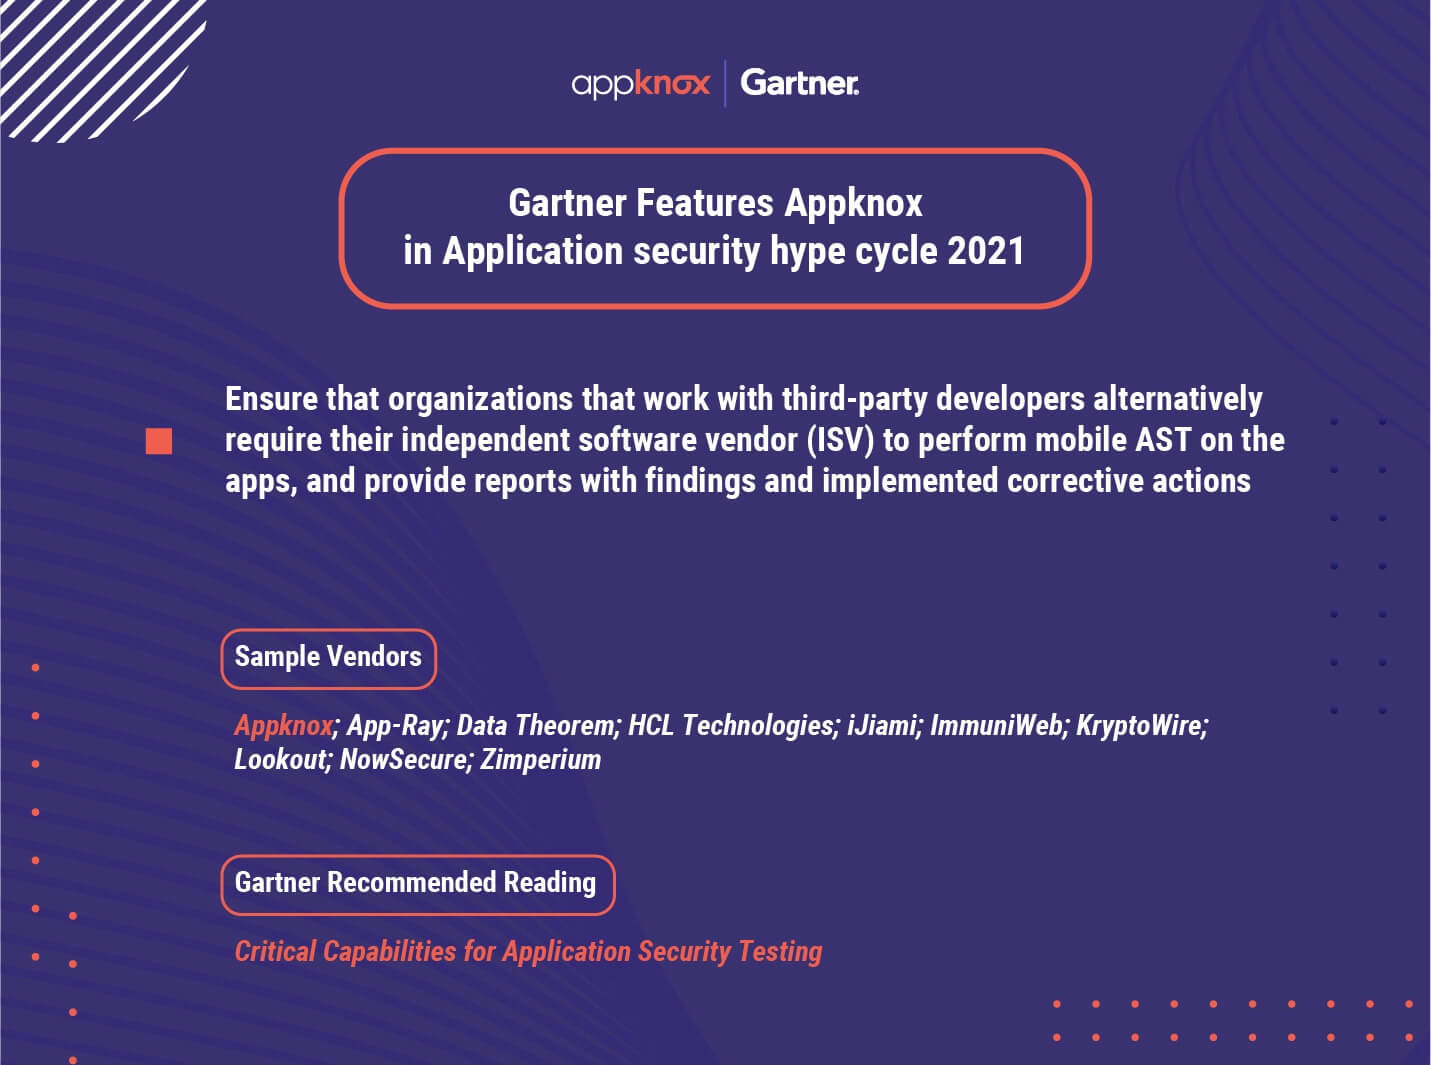 Appknox Has Been Named a Vendor In Gartner Hype Cycle For Application Security 2021